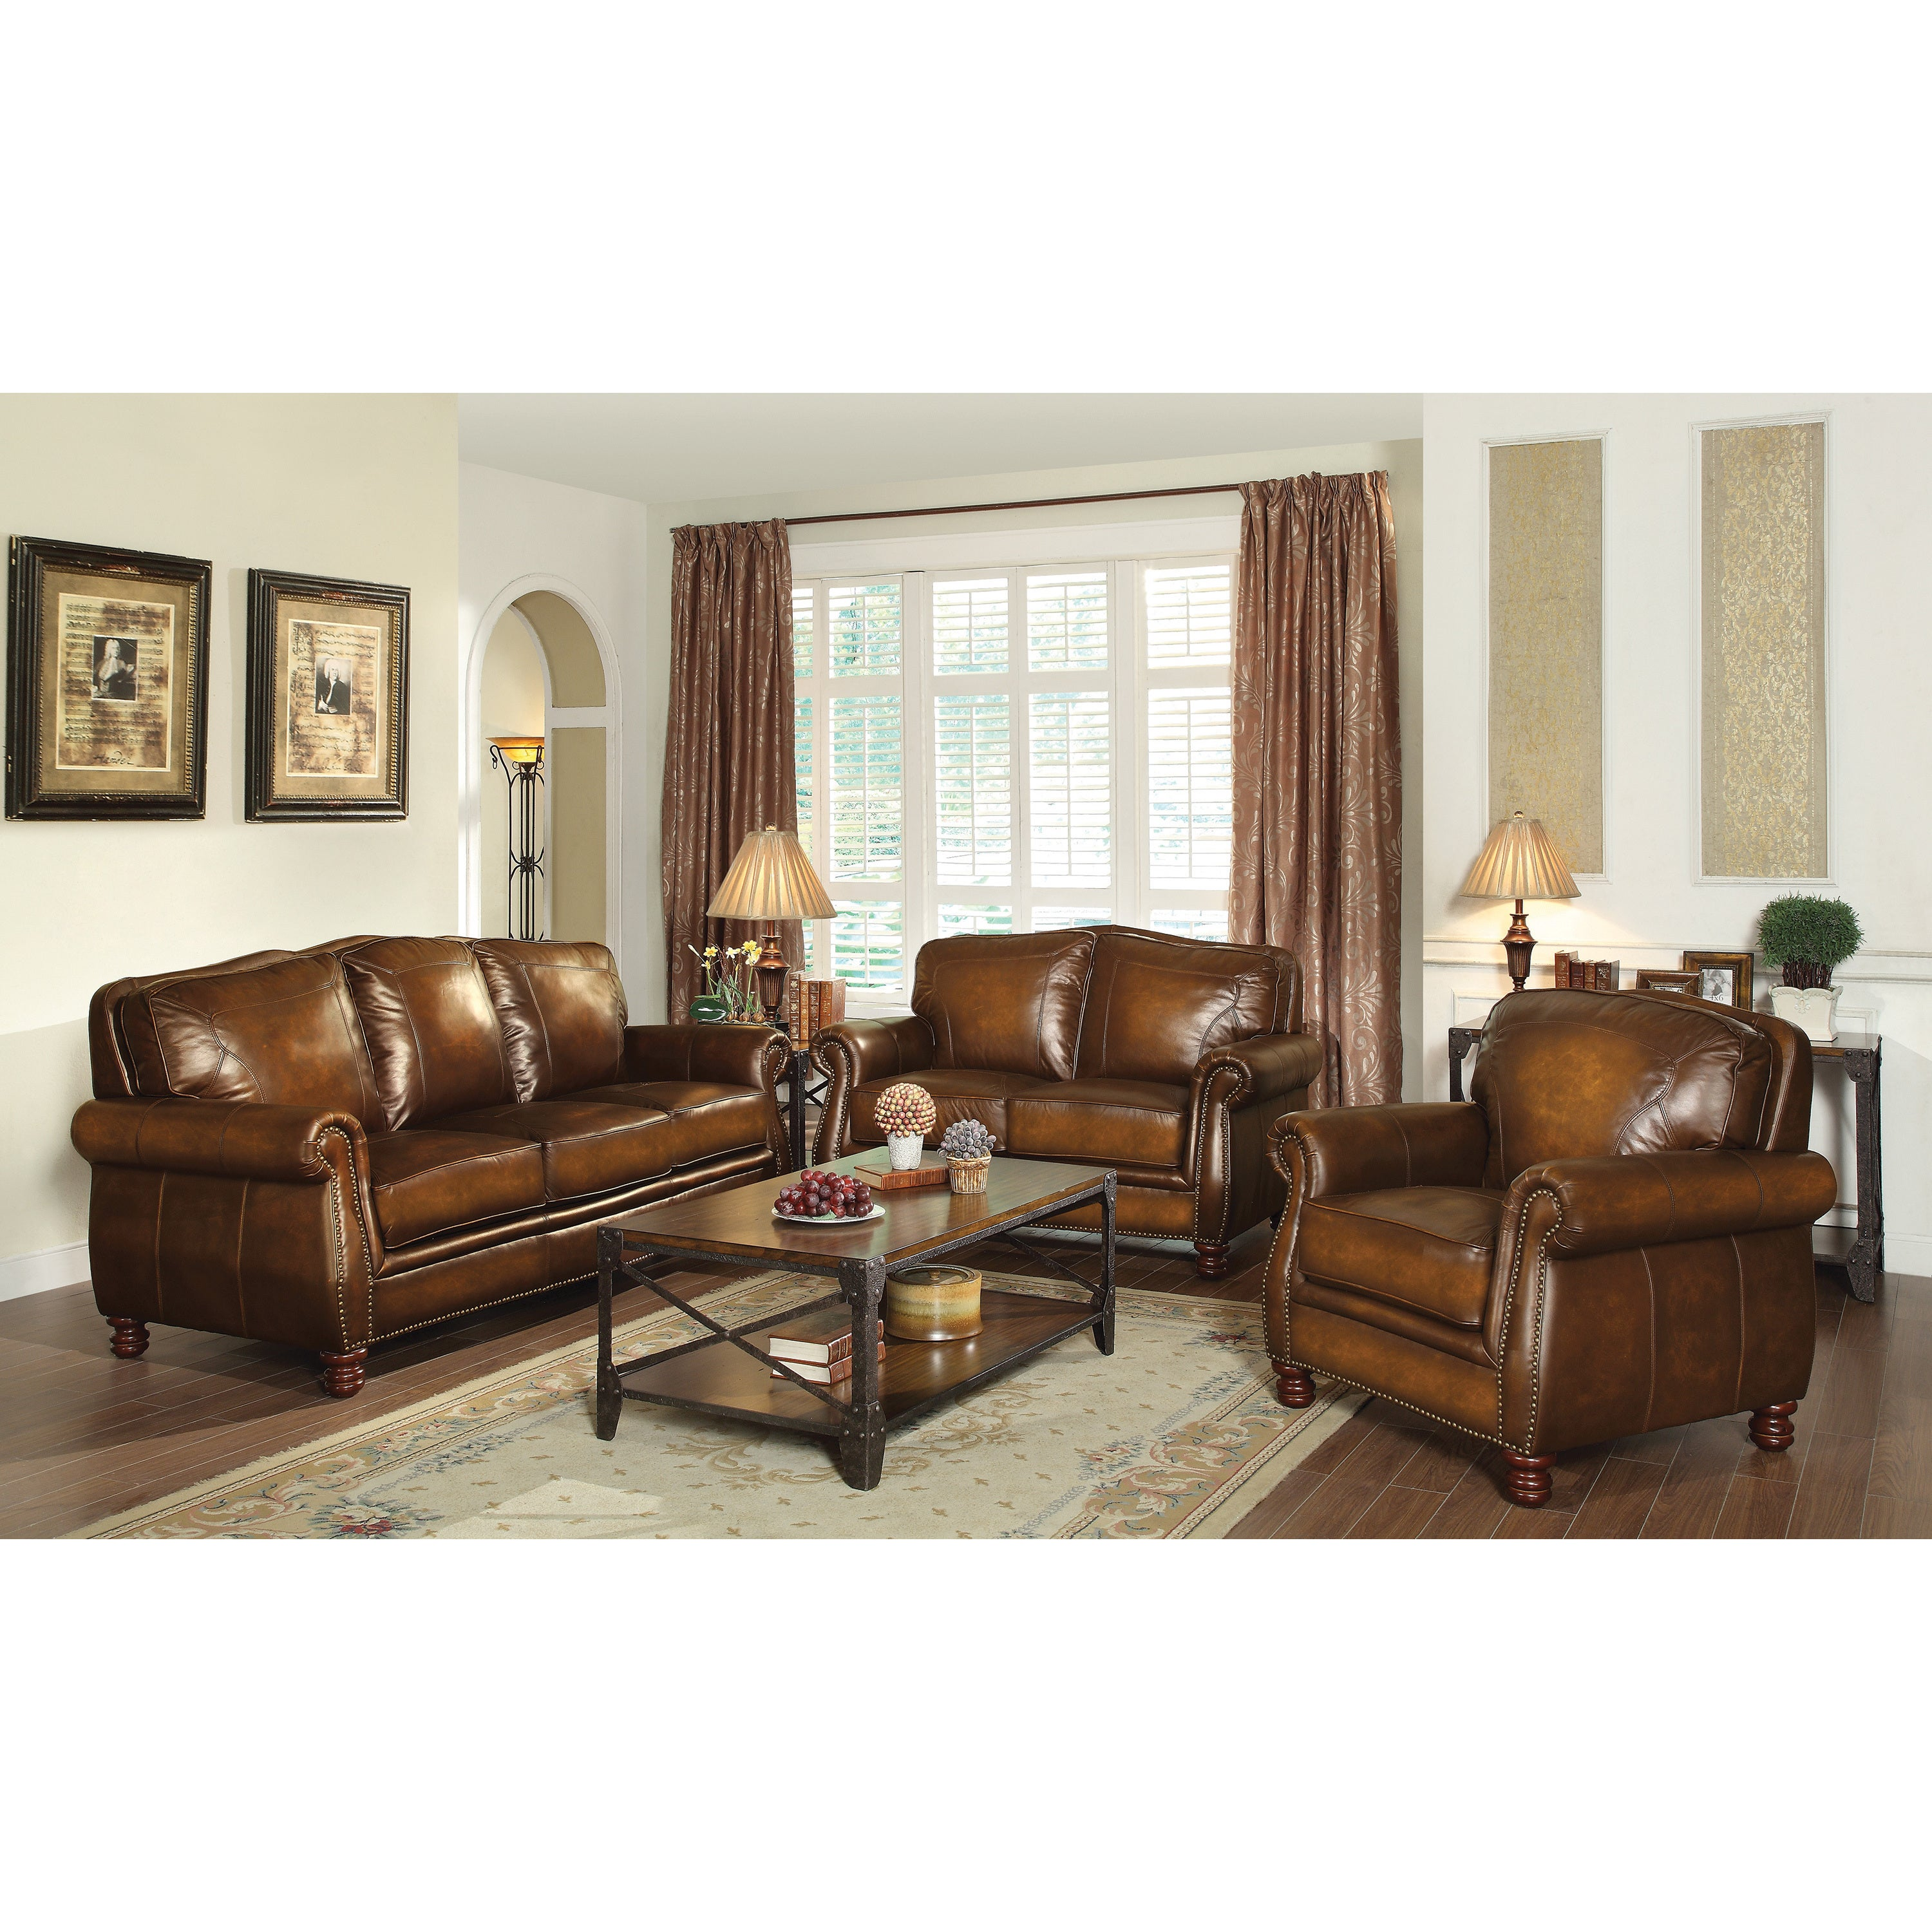 Coaster Company Nailhead Trim Brown Leather Sofa Free Shipping Today 12189797